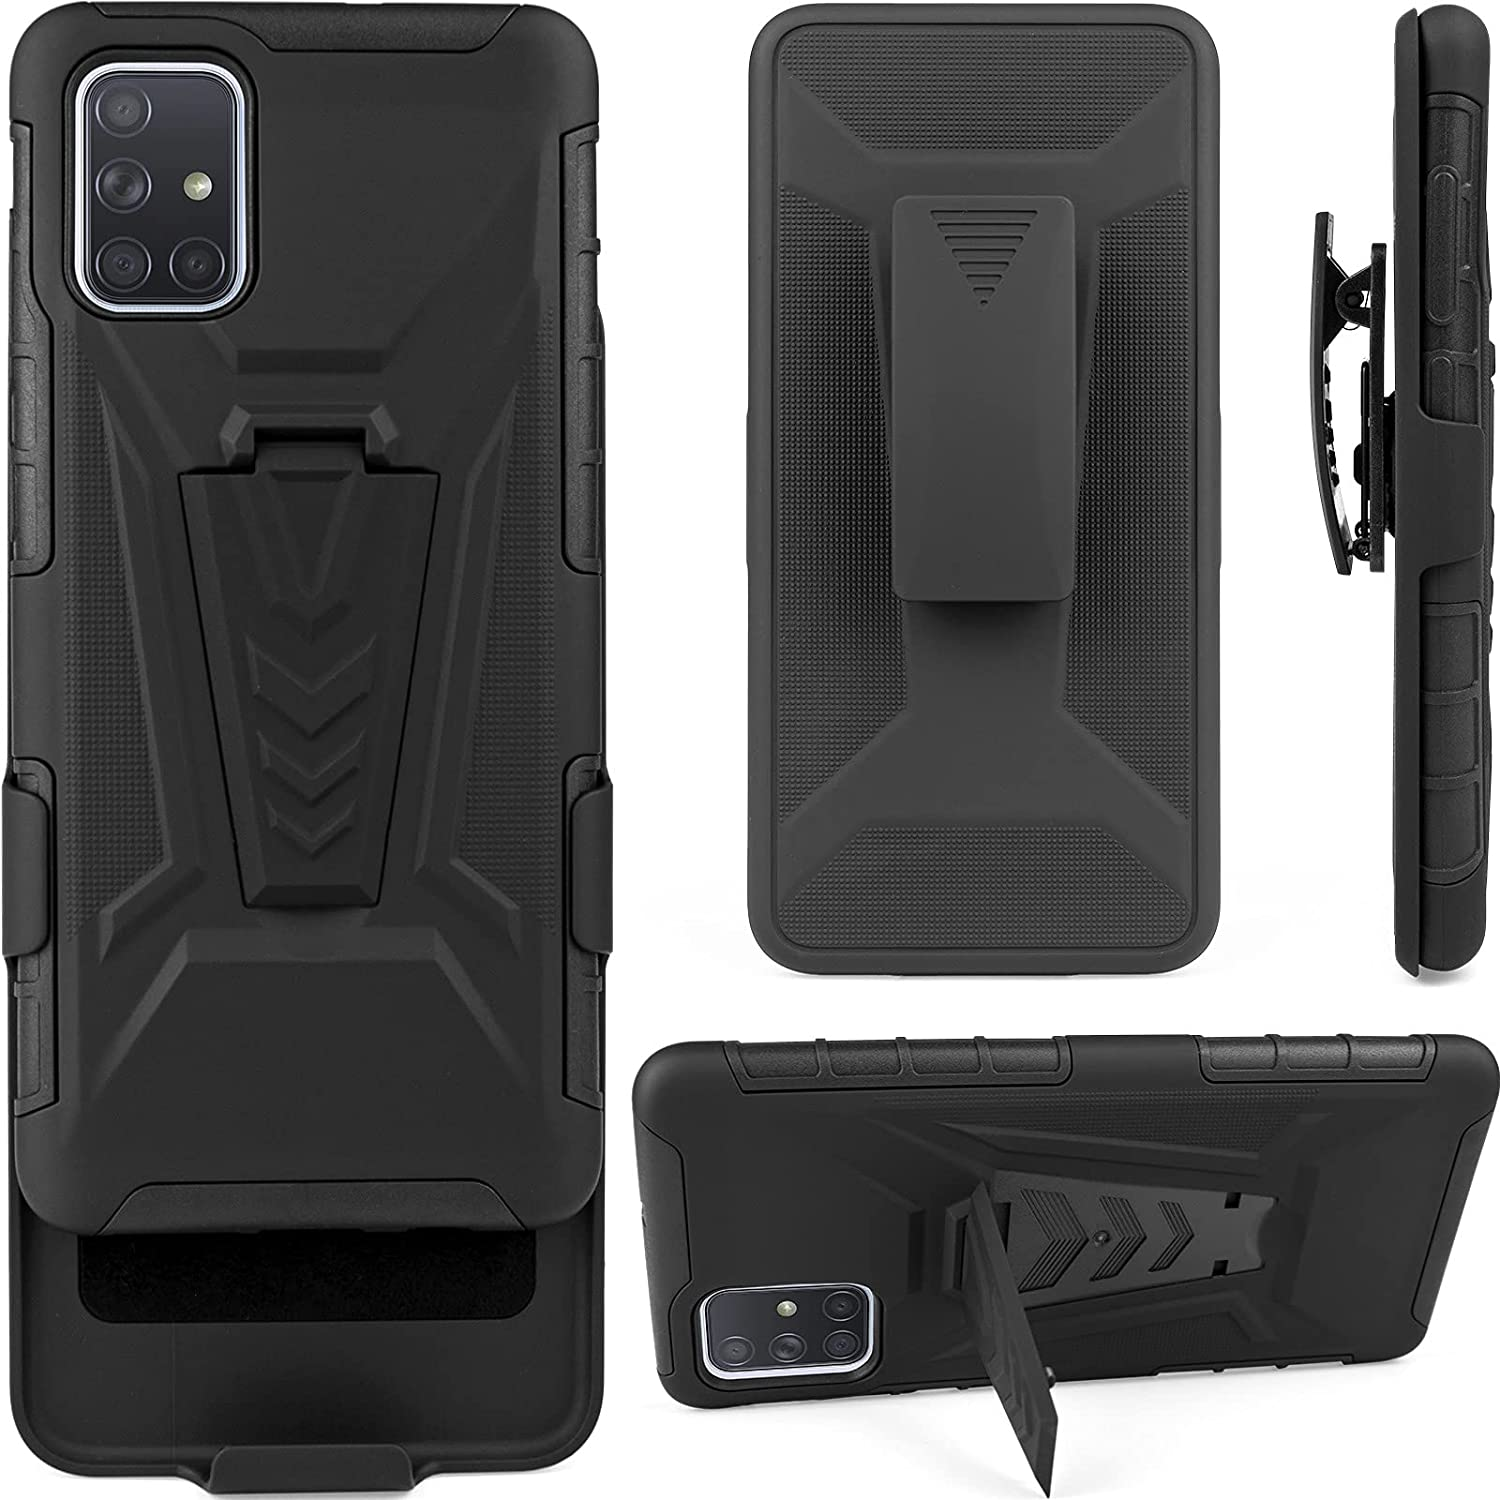 TKMore Belt Clip Case for Samsung Galaxy A71 4G Cell Phone Cover with Kickstand Holder Airbag Anti-Fall Holster Black